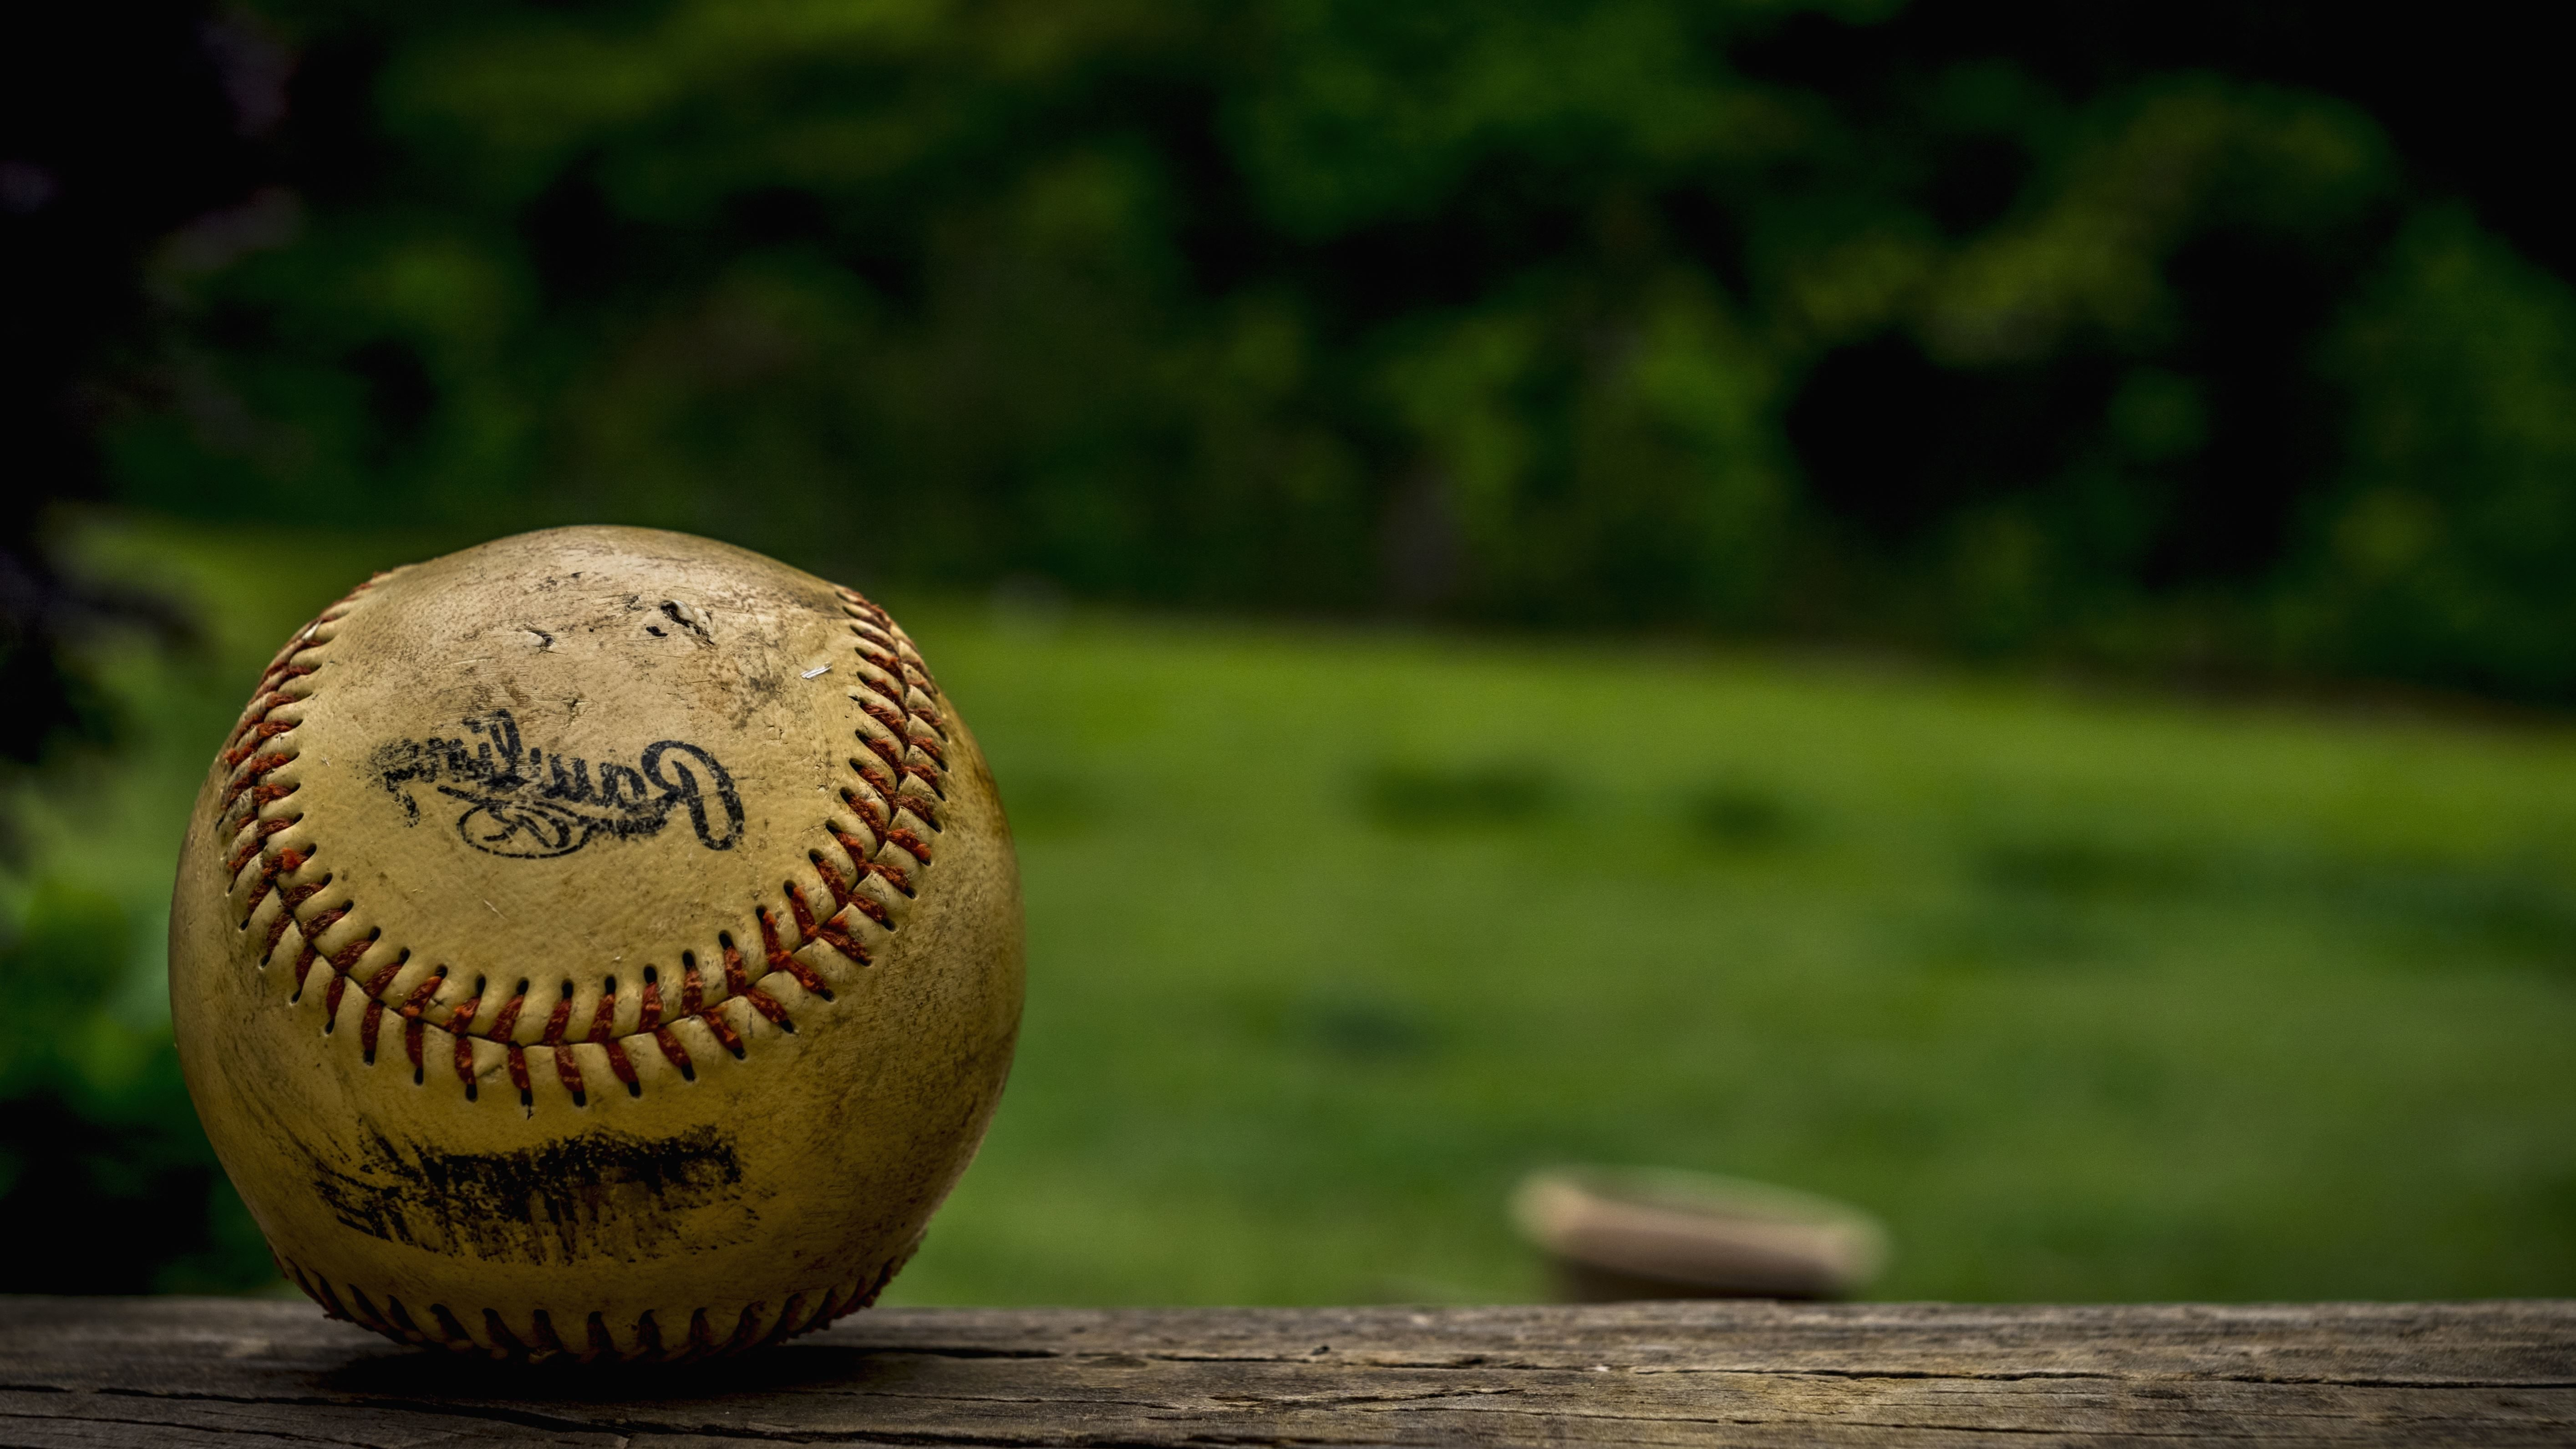 Free picture: baseball, ball, sport